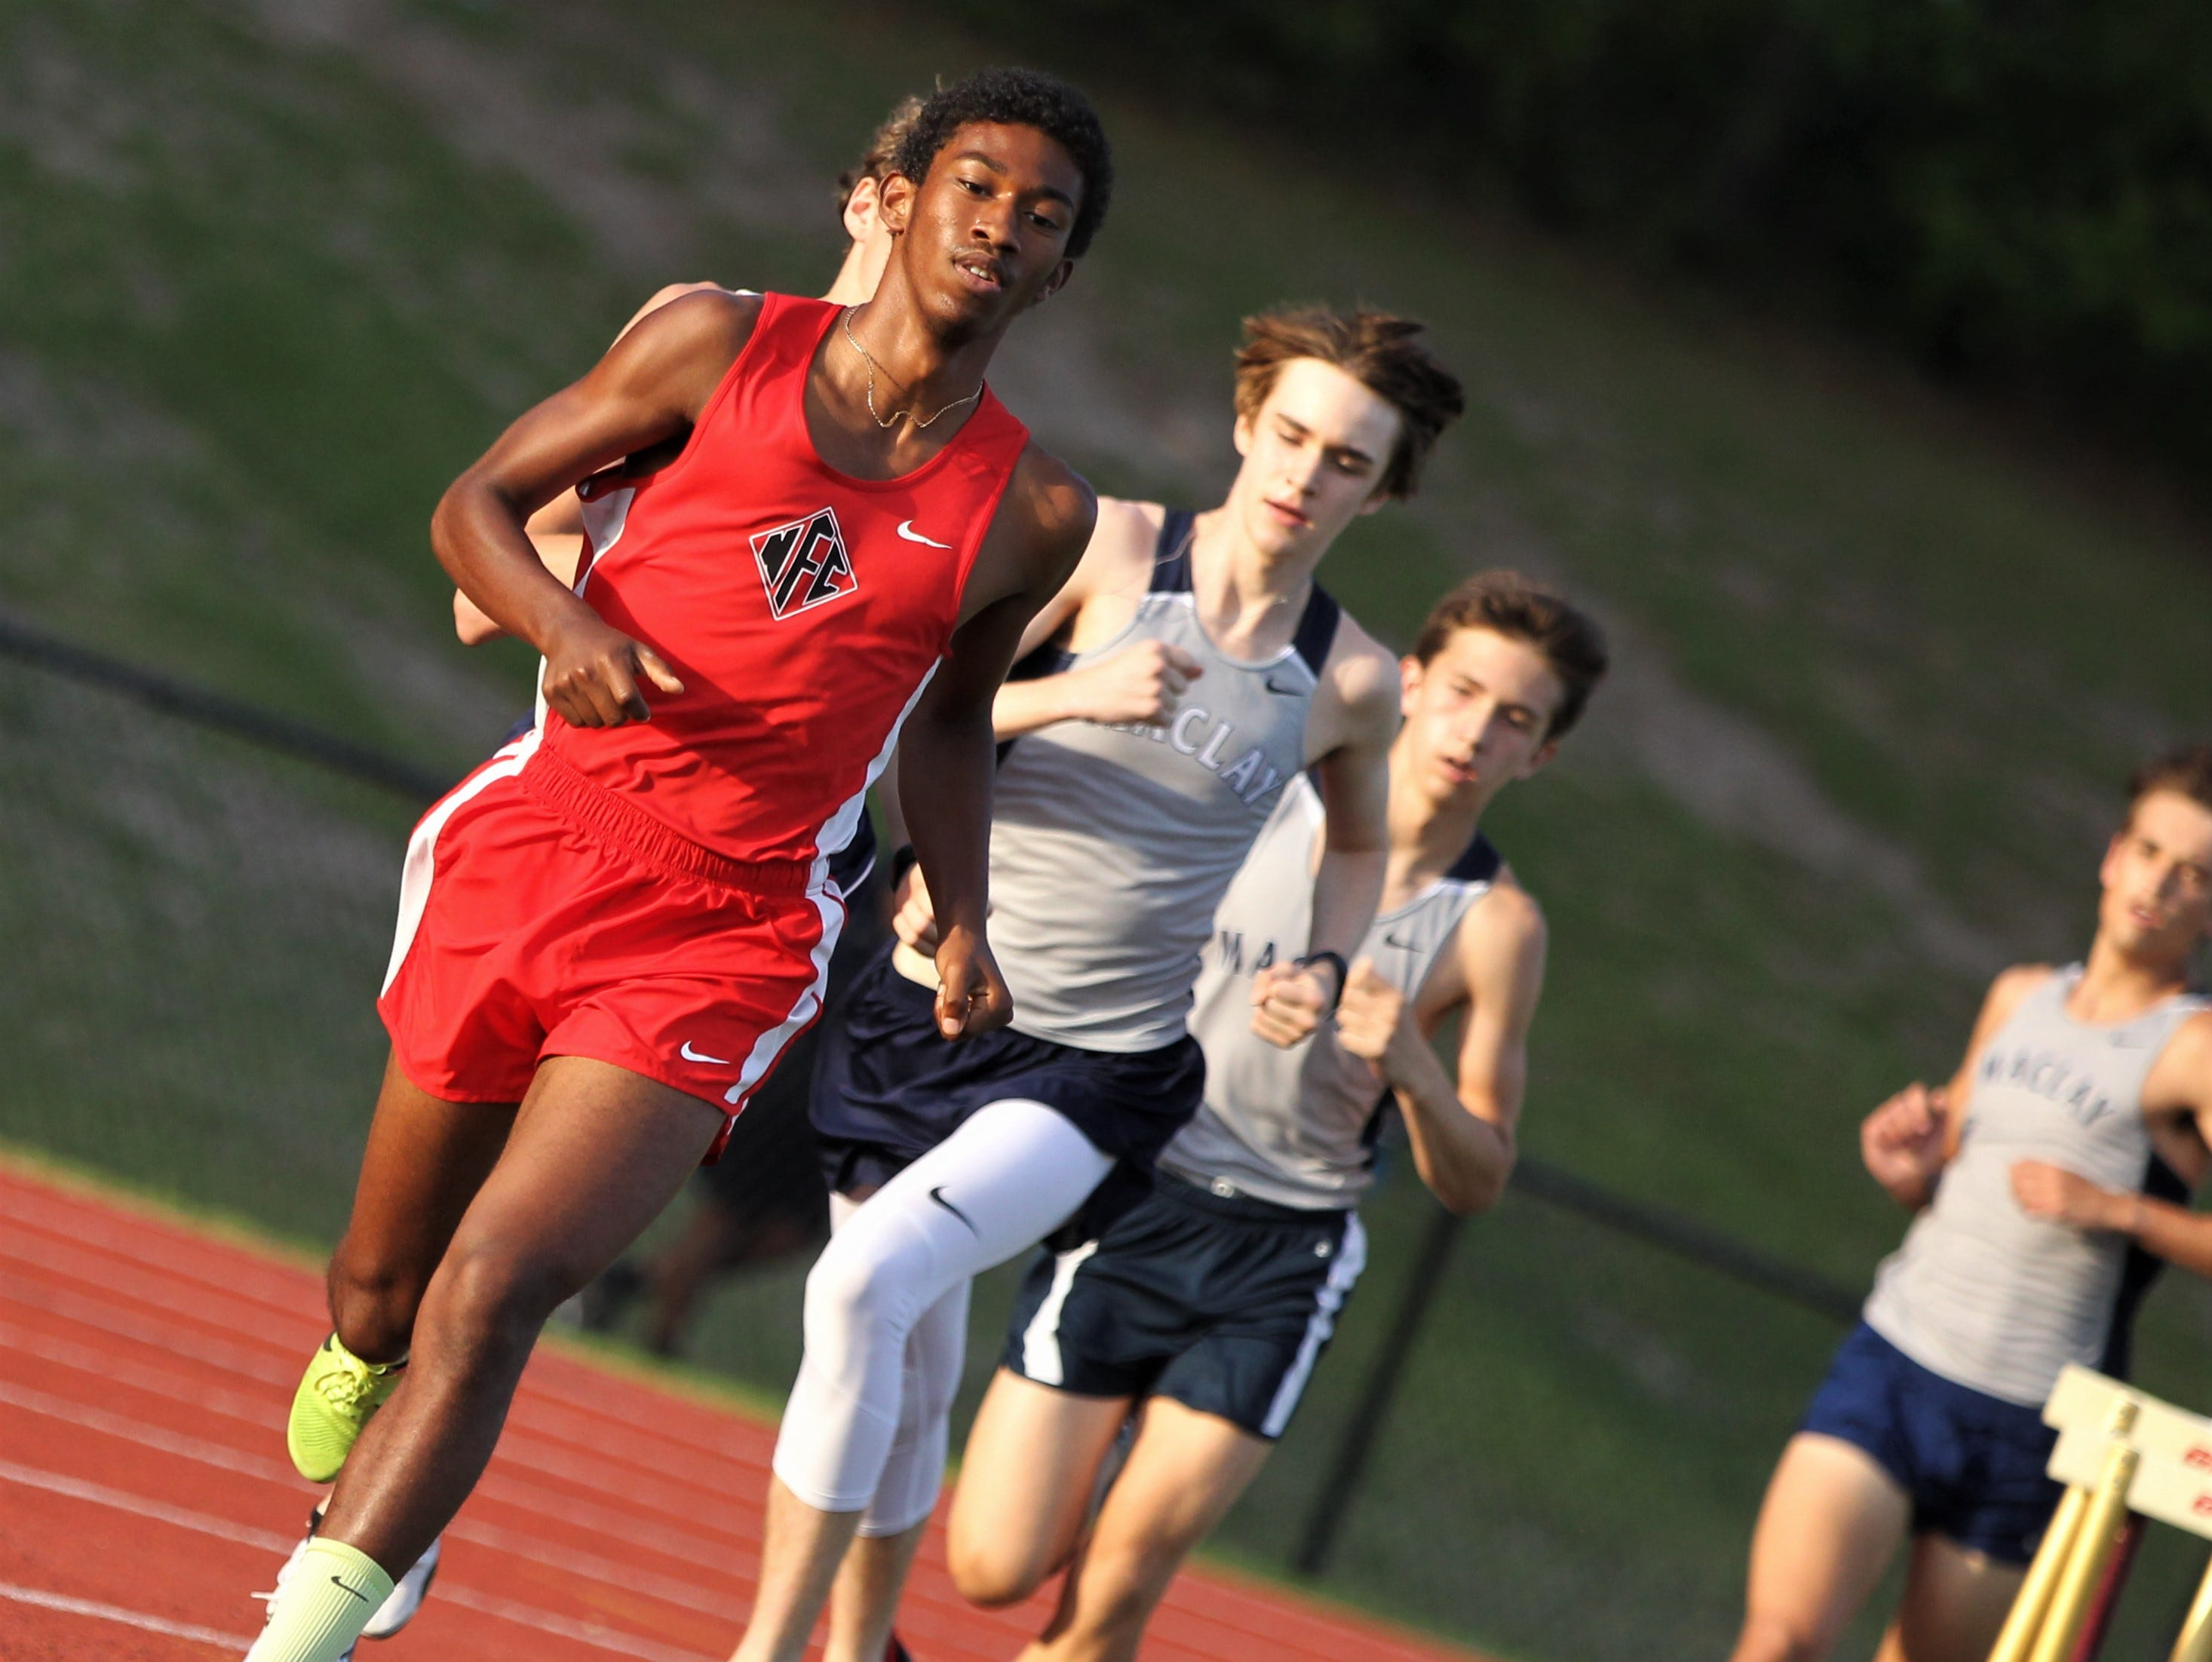 NFC junior David Keen races during the District 3-1A and 2-2A track and field meets at Florida High on Saturday, April 13, 2019.